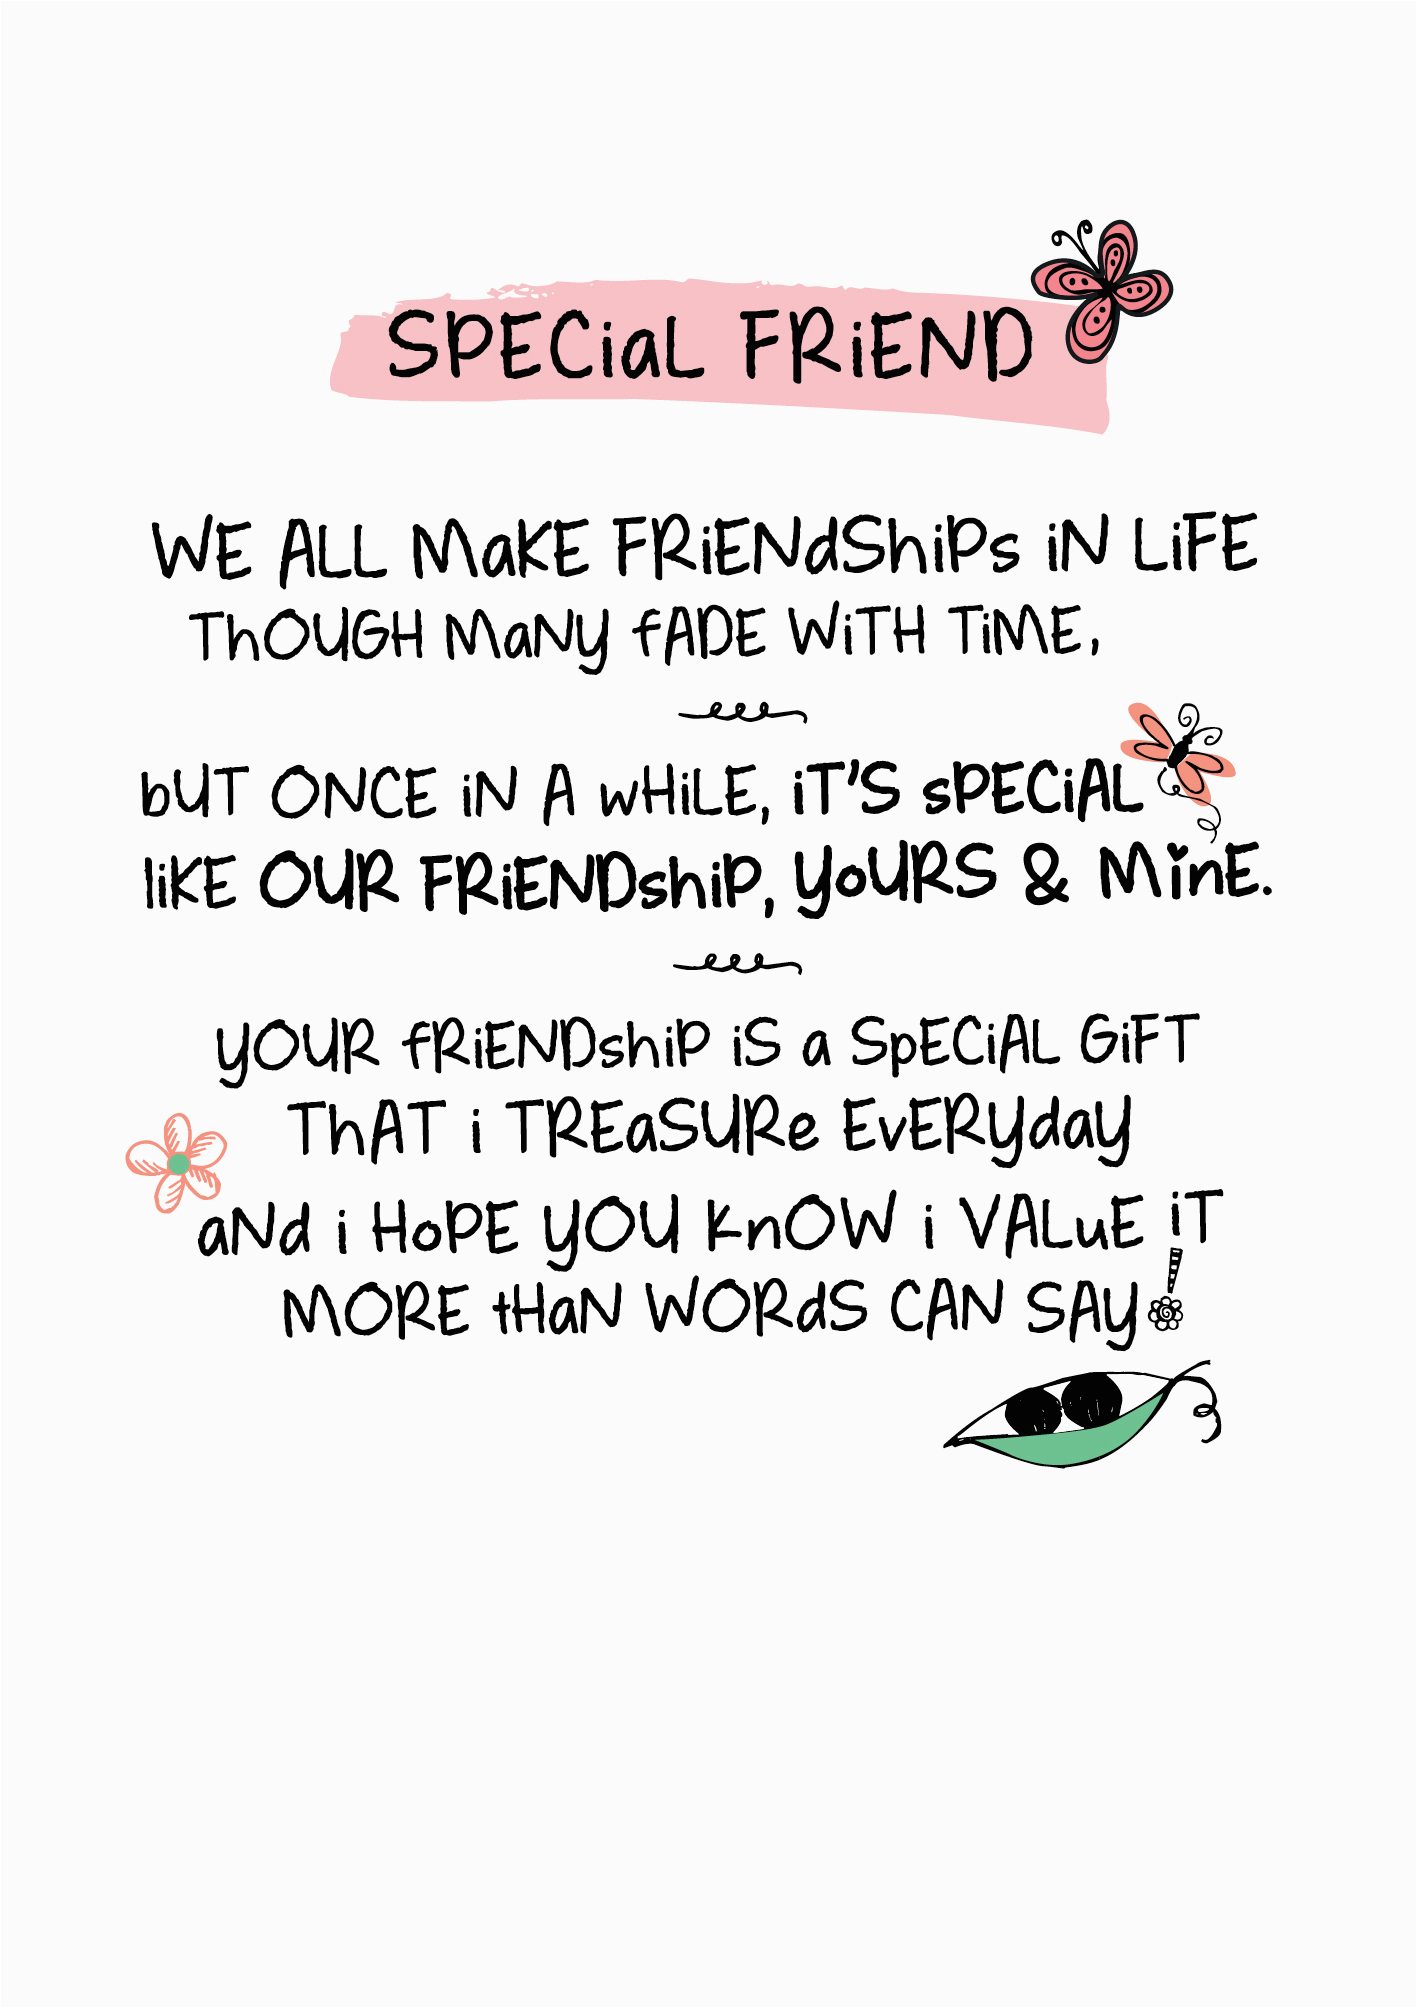 kciwptr050 special friend inspired words greeting card blank inside